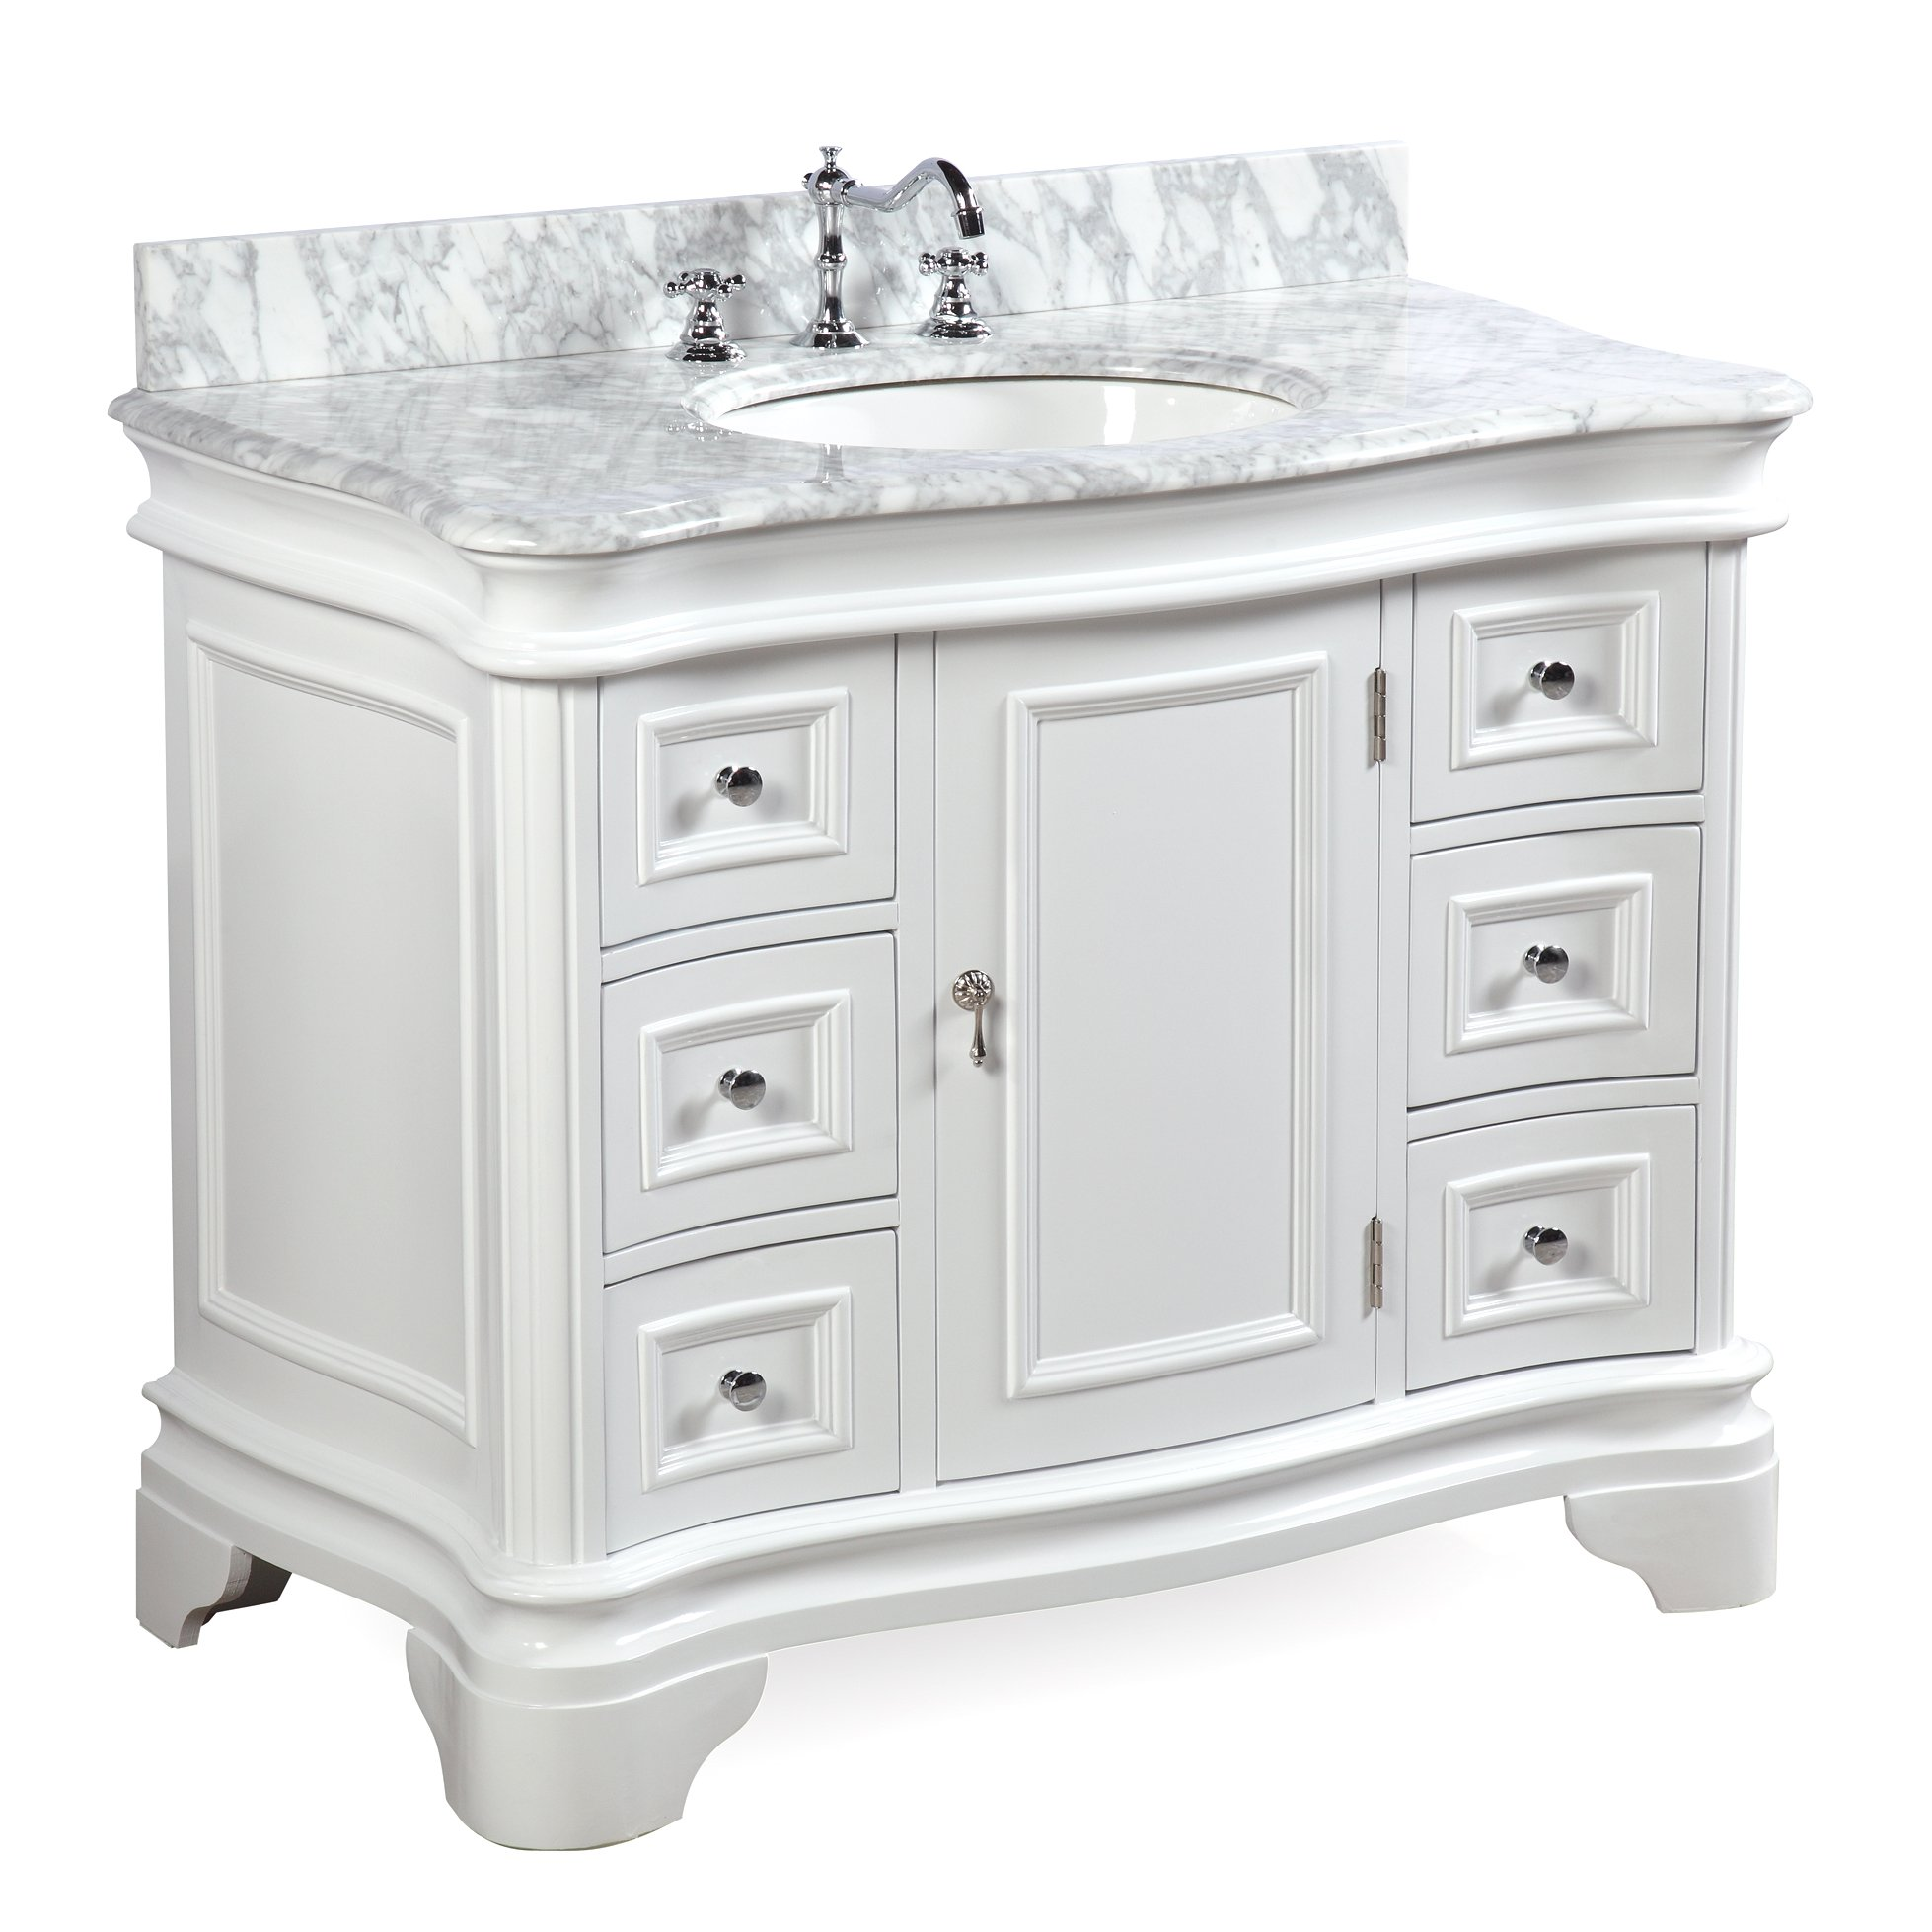 0931097bff2 Get Quotations · Katherine 42-inch Bathroom Vanity (Carrara White)  Includes  White Cabinet with